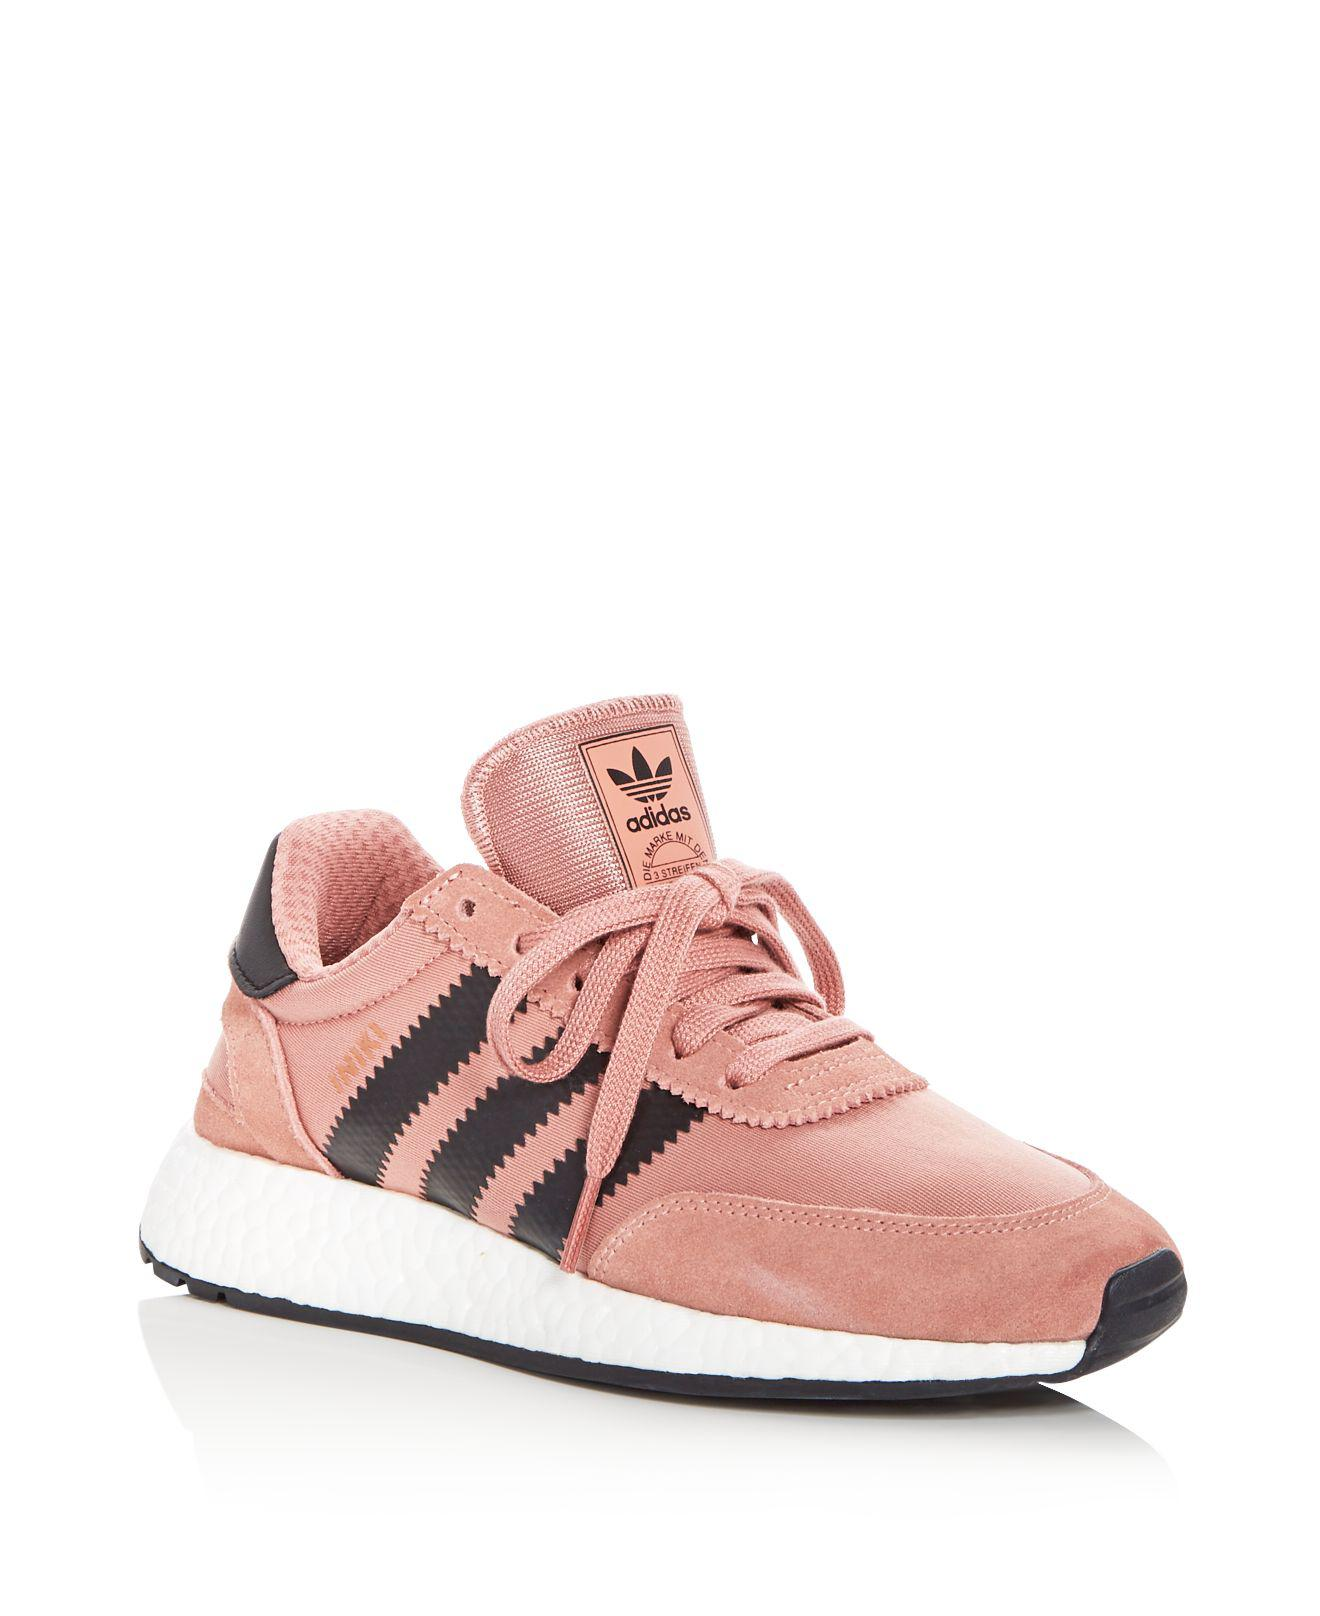 Adidas - Pink Women's I5923 Lace Up Sneakers - Lyst. View Fullscreen